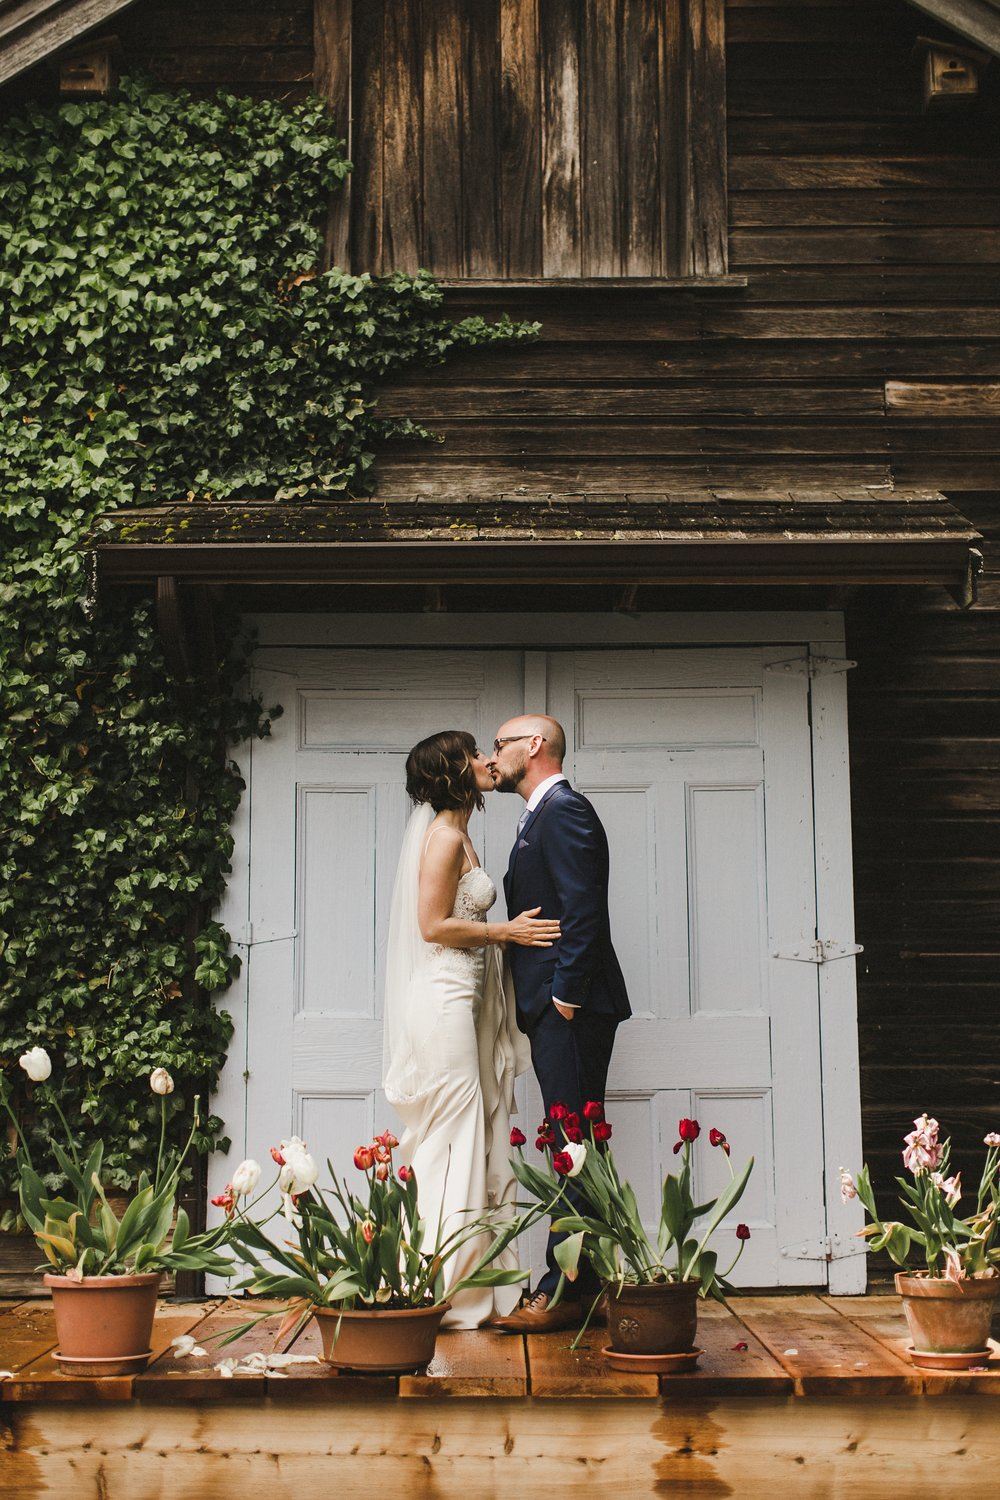 Kyla+Chris-217.jpg